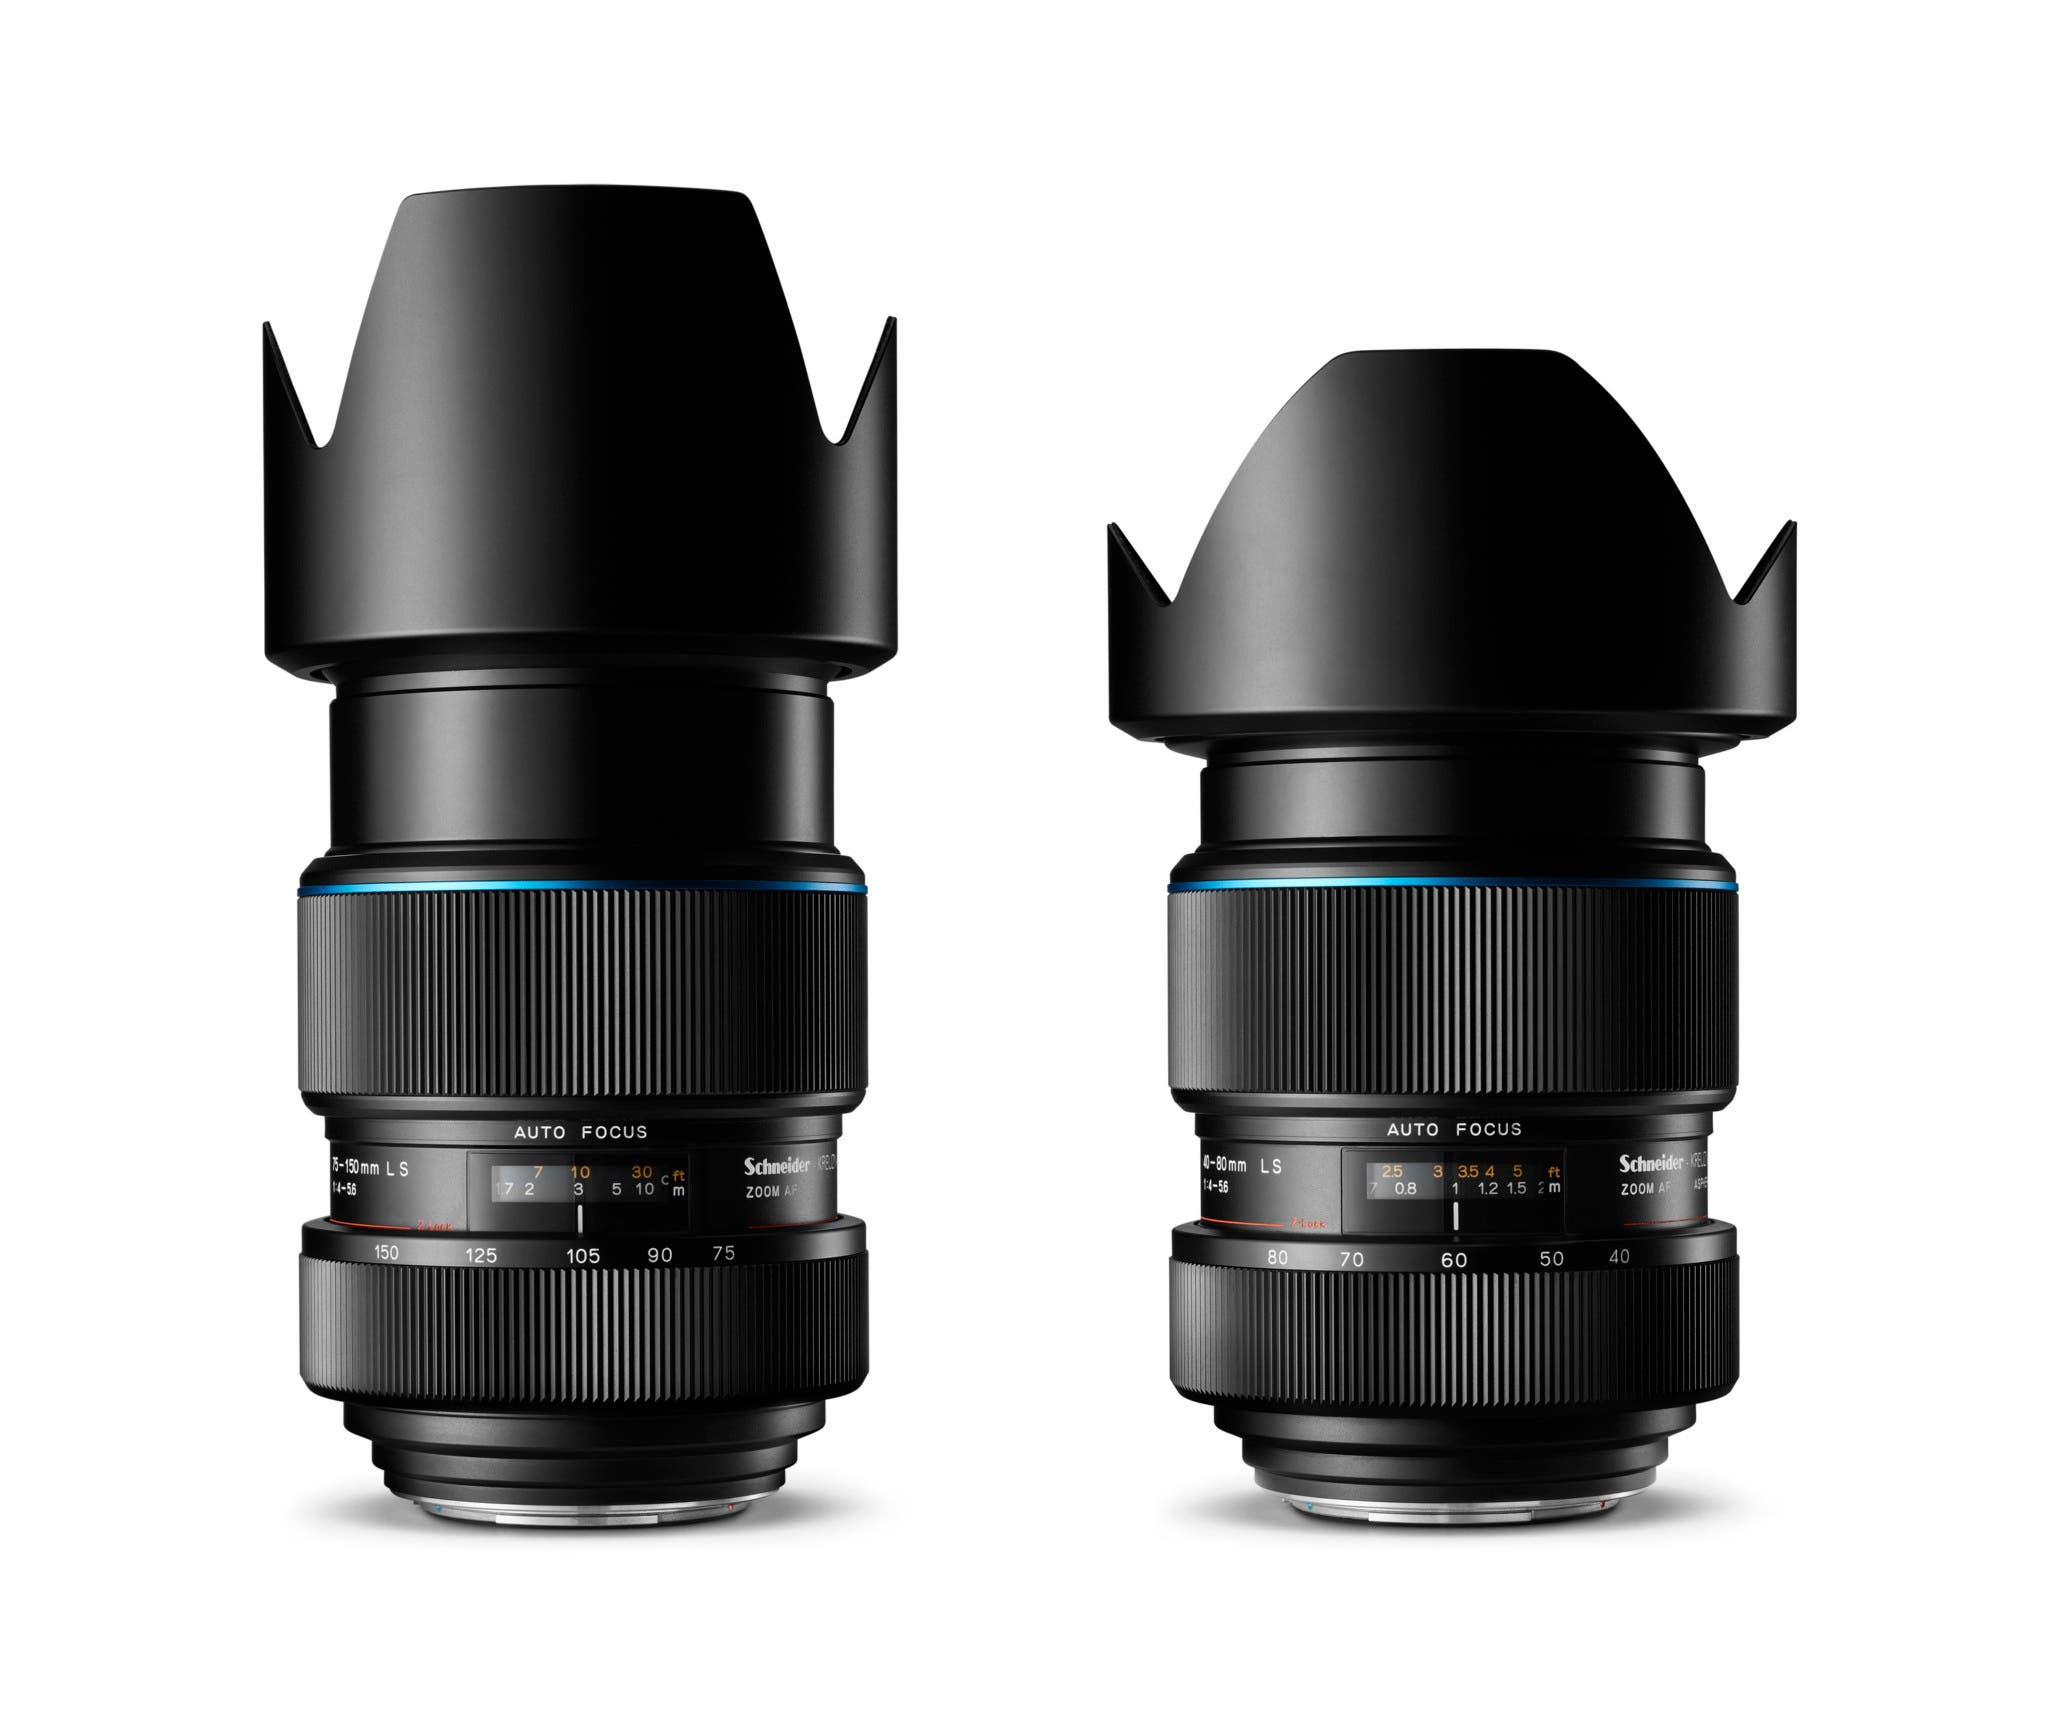 (UPDATED WITH SAMPLE PHOTOS) Phase One Has Two New Zoom Lenses From Schneider Kreuznach